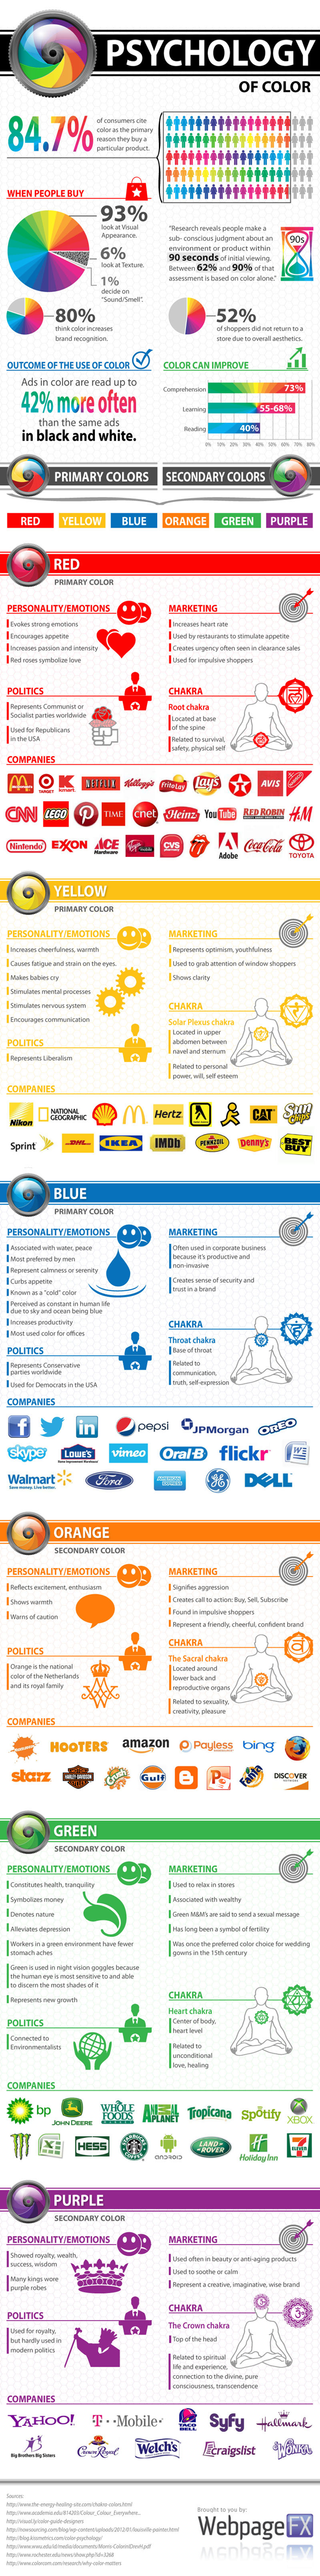 Just interesting for color info. Psychology of Color [Infographic] A look at the psychological impact of color on design politics marketing and more.